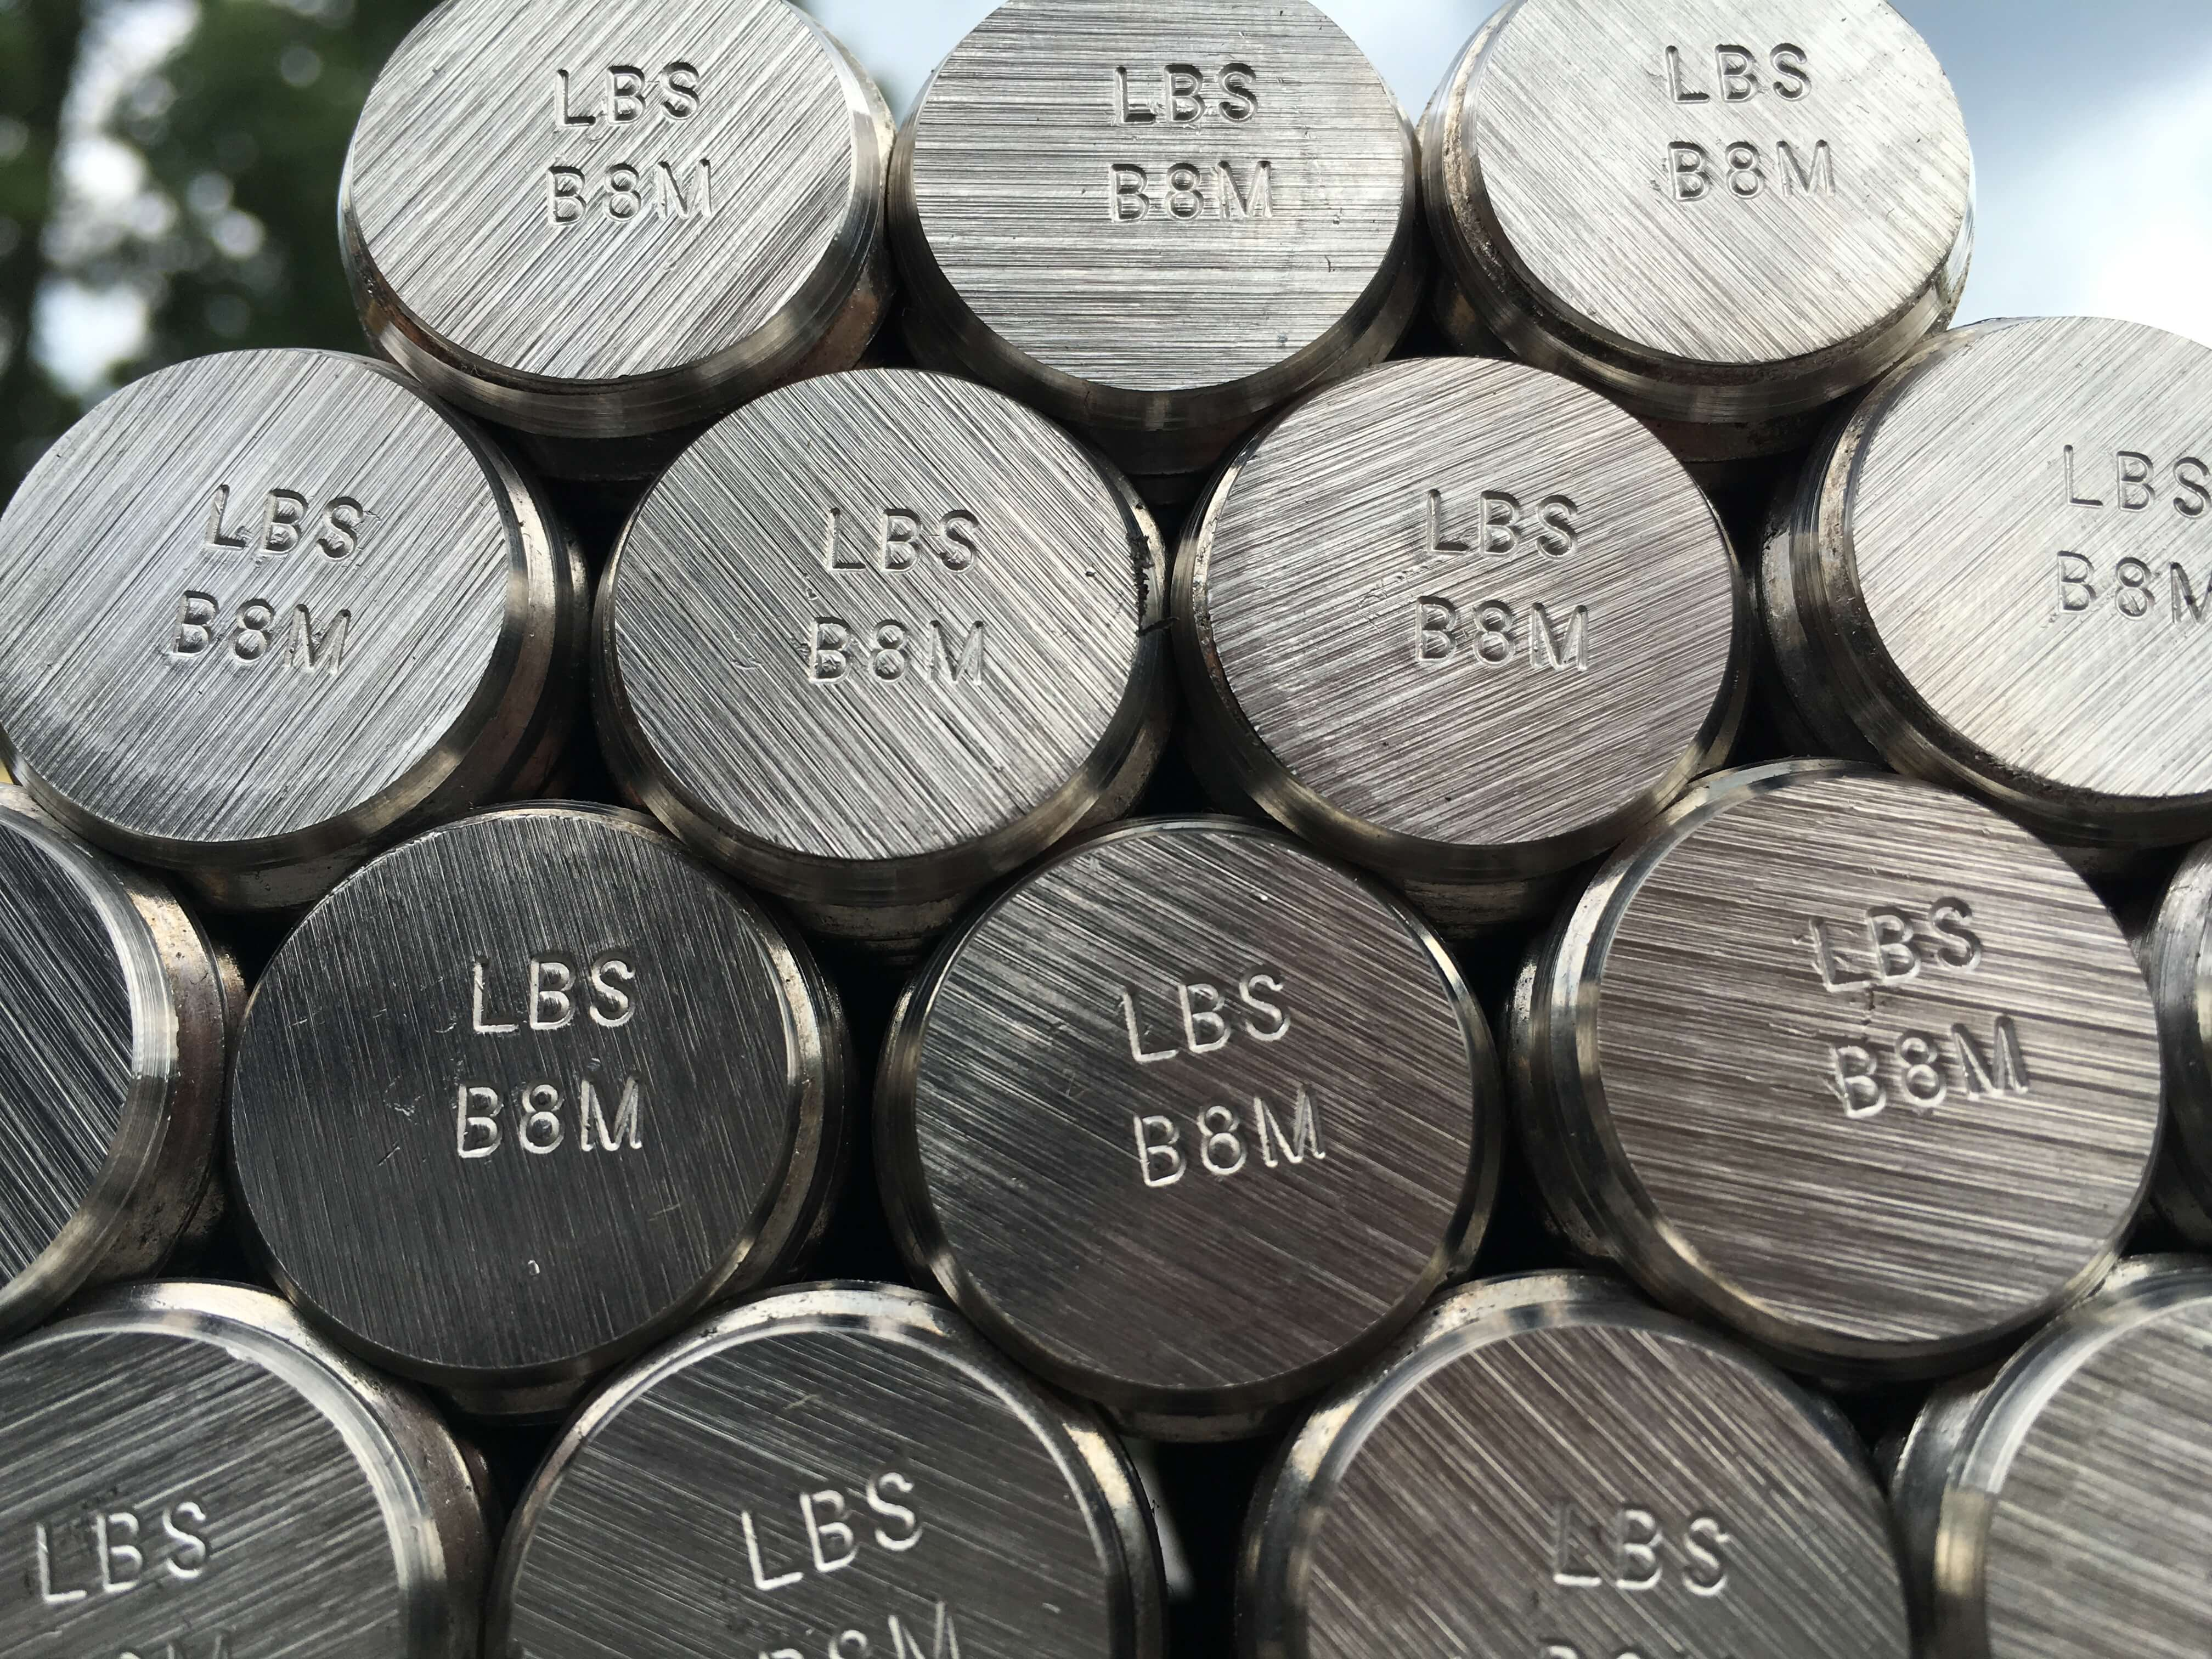 ASTM A193 B8M Stainless steel stud bolts, B8 studs, B8M studs, ASTM A193 B8M, ASTM A320 B8M, ASTM A193 B8, ASTM A193 B8M, Class 2, strain hardened